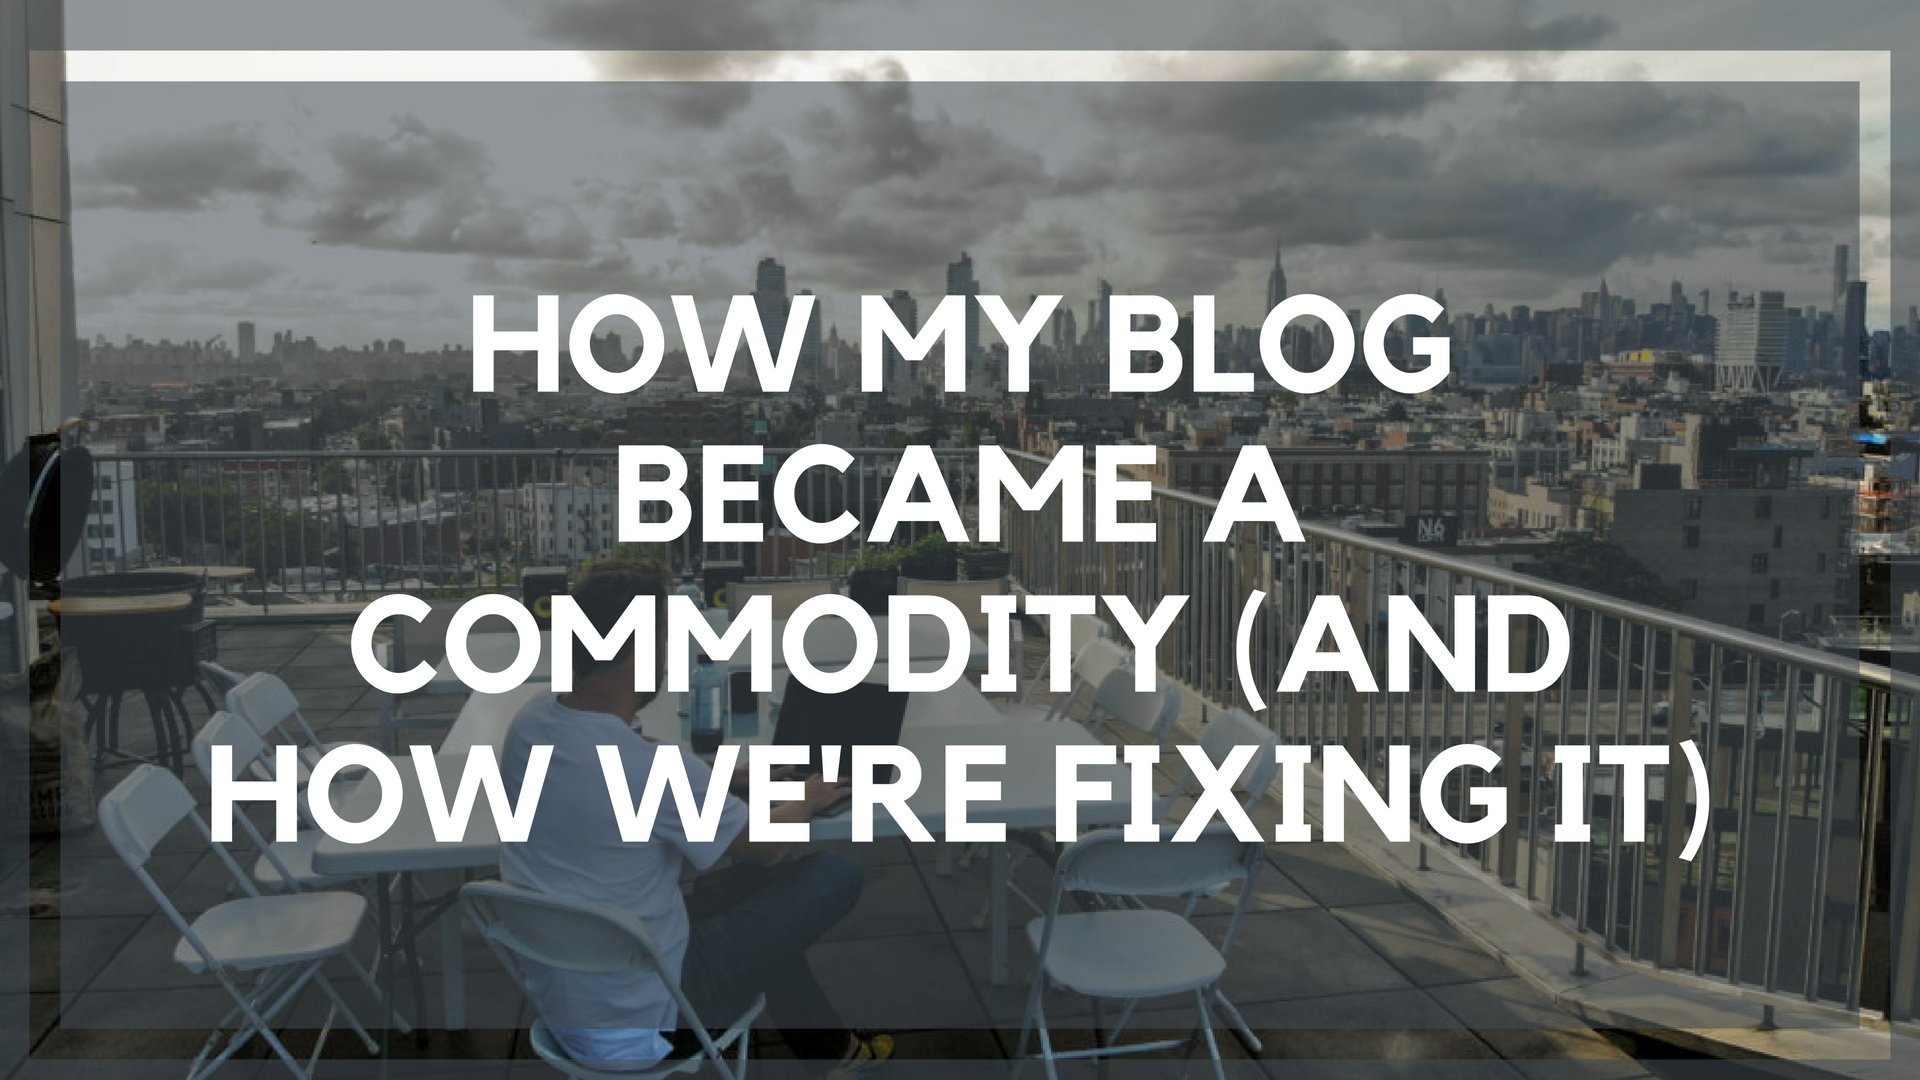 How My Blog Became a Commodity (and How We're Fixing It)